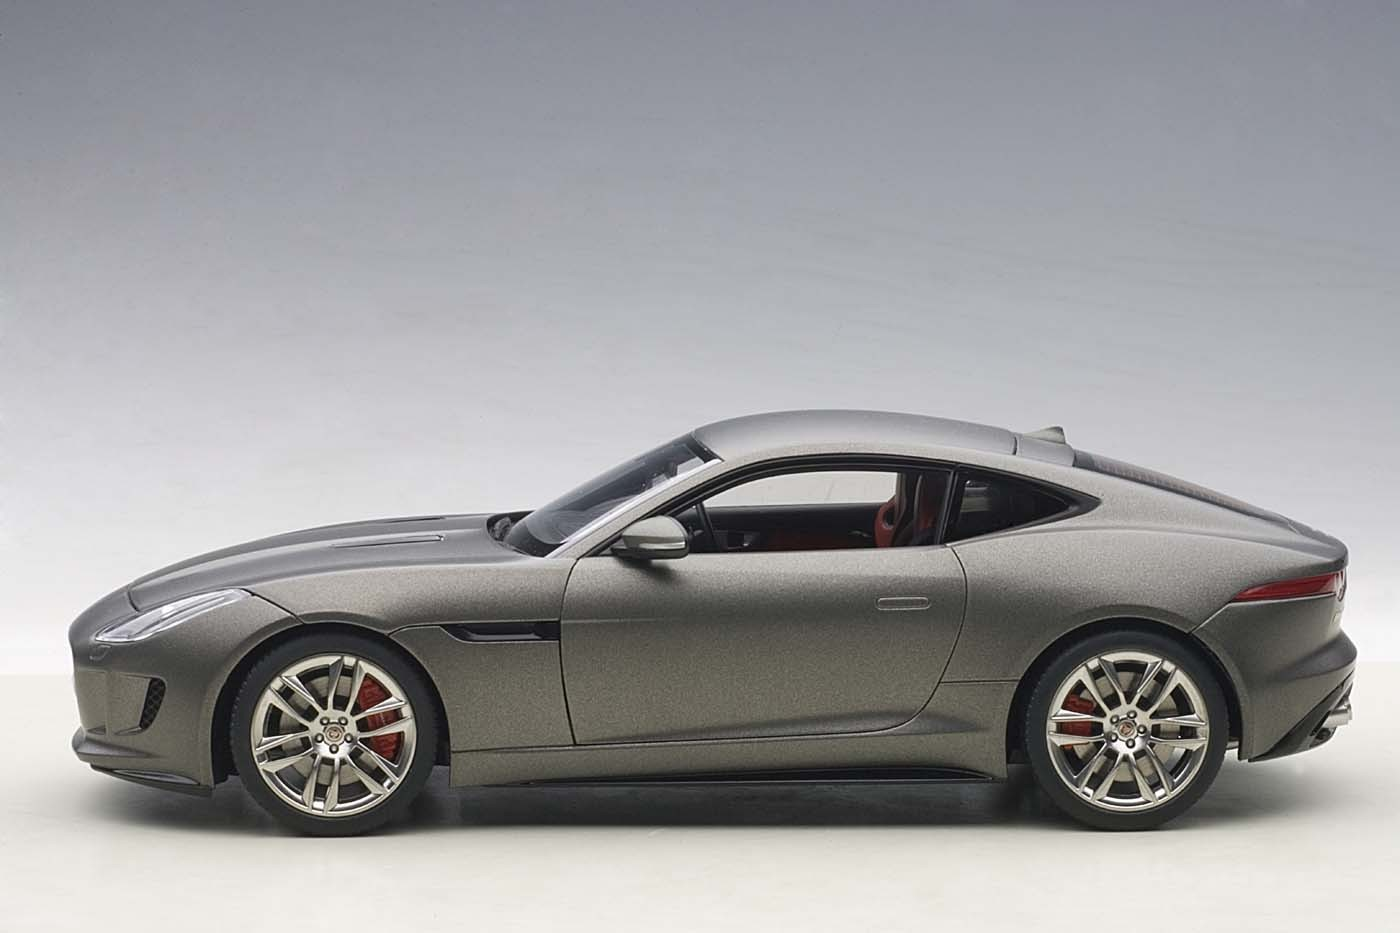 F Type Coupe >> Highly detailed AUTOart diecast model car Jaguar F-Type